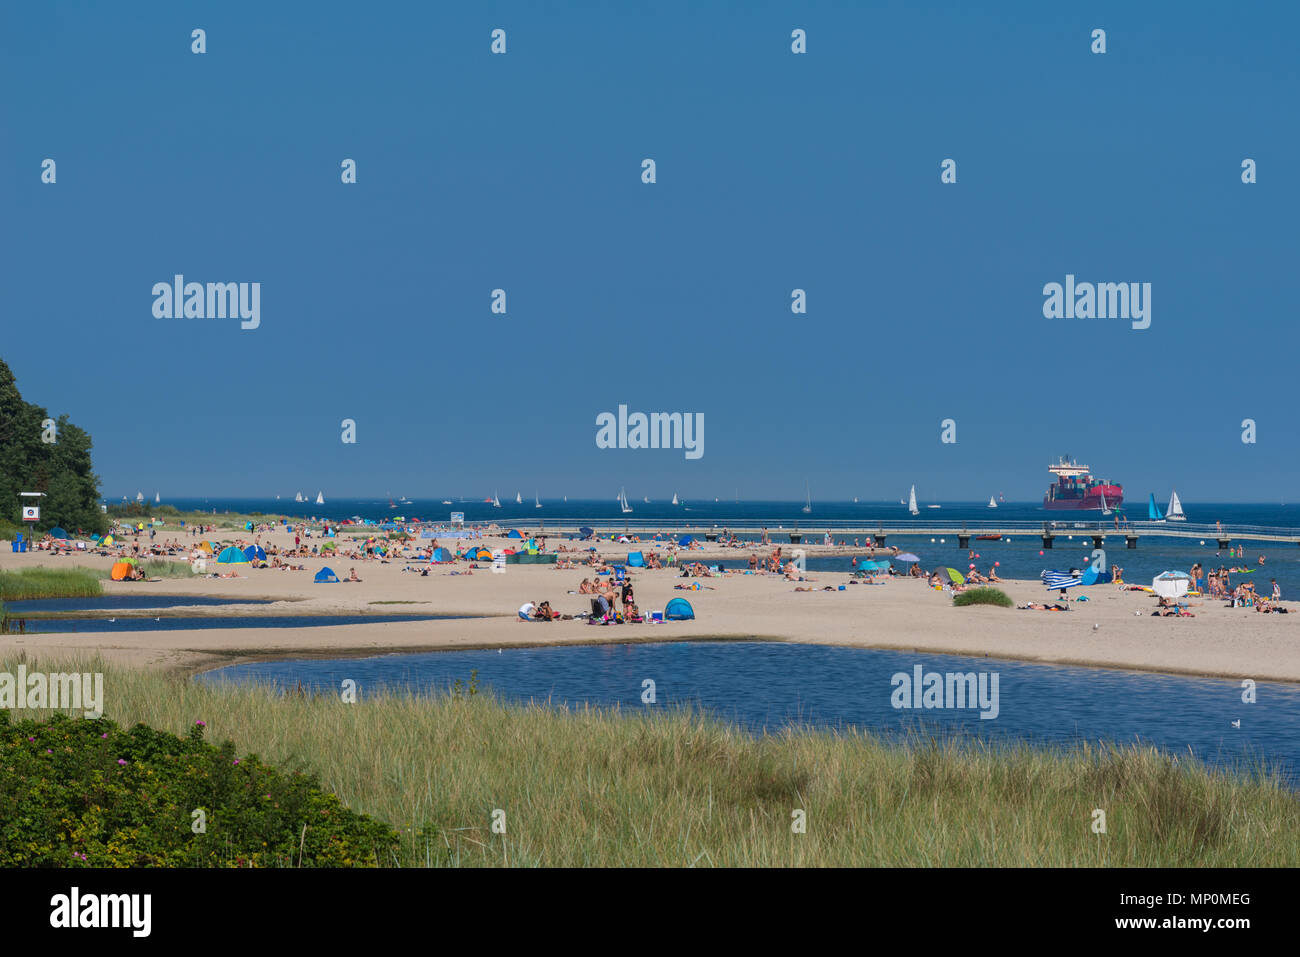 Relaxing on a hot summer day at the beach 'Falkensteiner Strand', Kiel Fjord, Kiel, Germany, - Stock Image